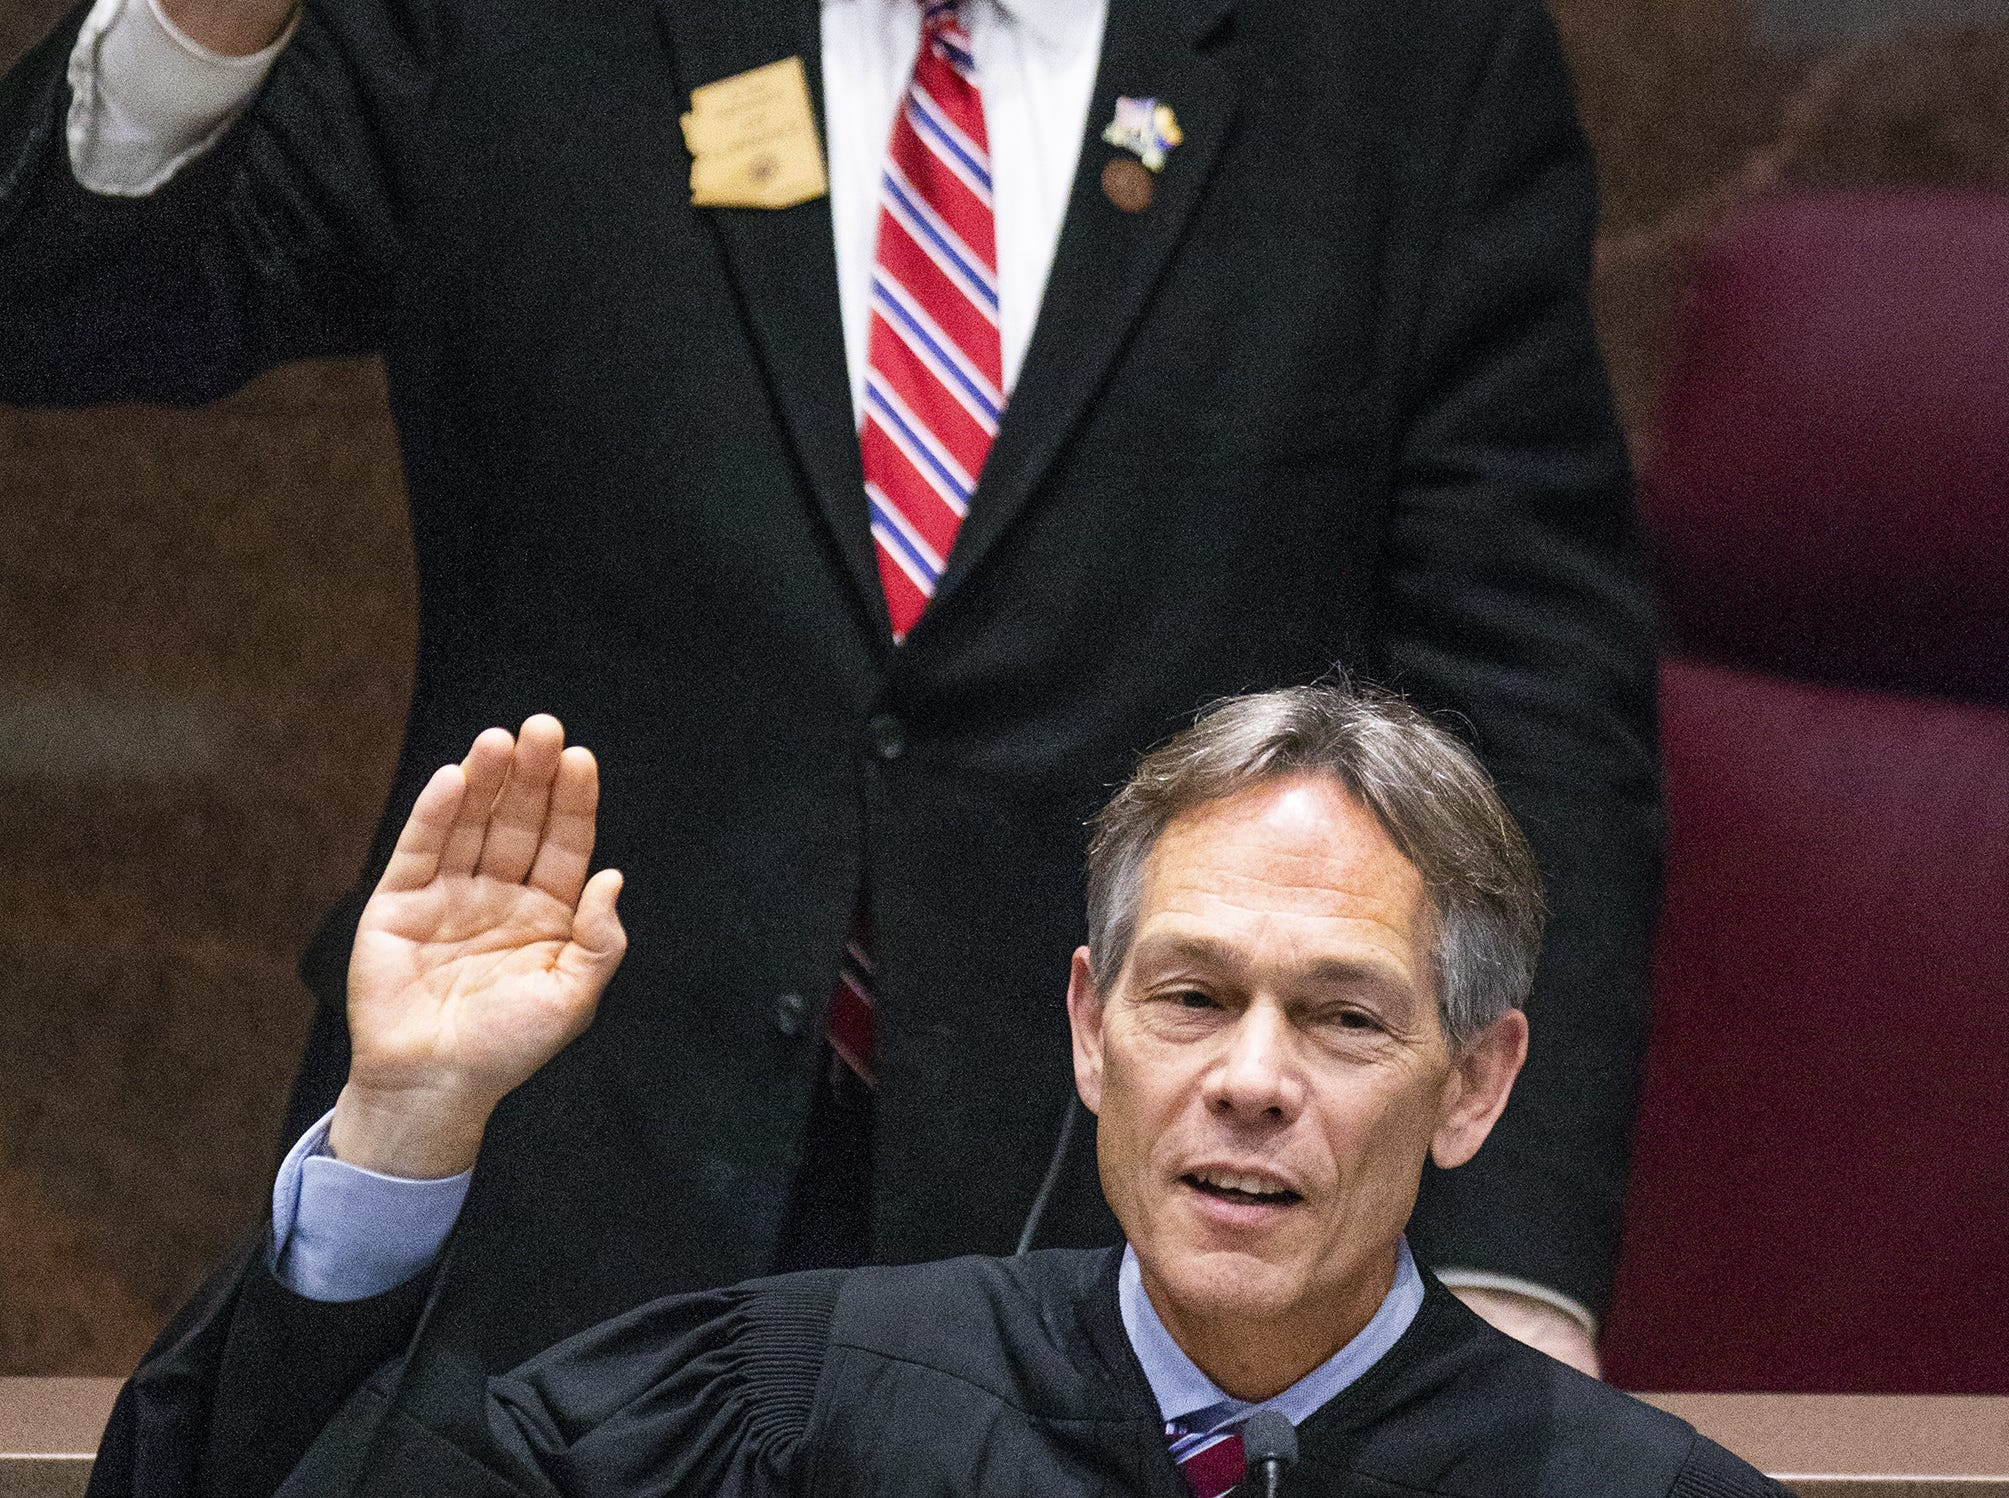 Arizona Supreme Court Chief Justice W. Scott Bales administers the oath of office before Gov. Doug Ducey's State of the State address to the Legislature and guests gathered in the House of Representatives at the Arizona state Capitol on Jan. 14, 2019.